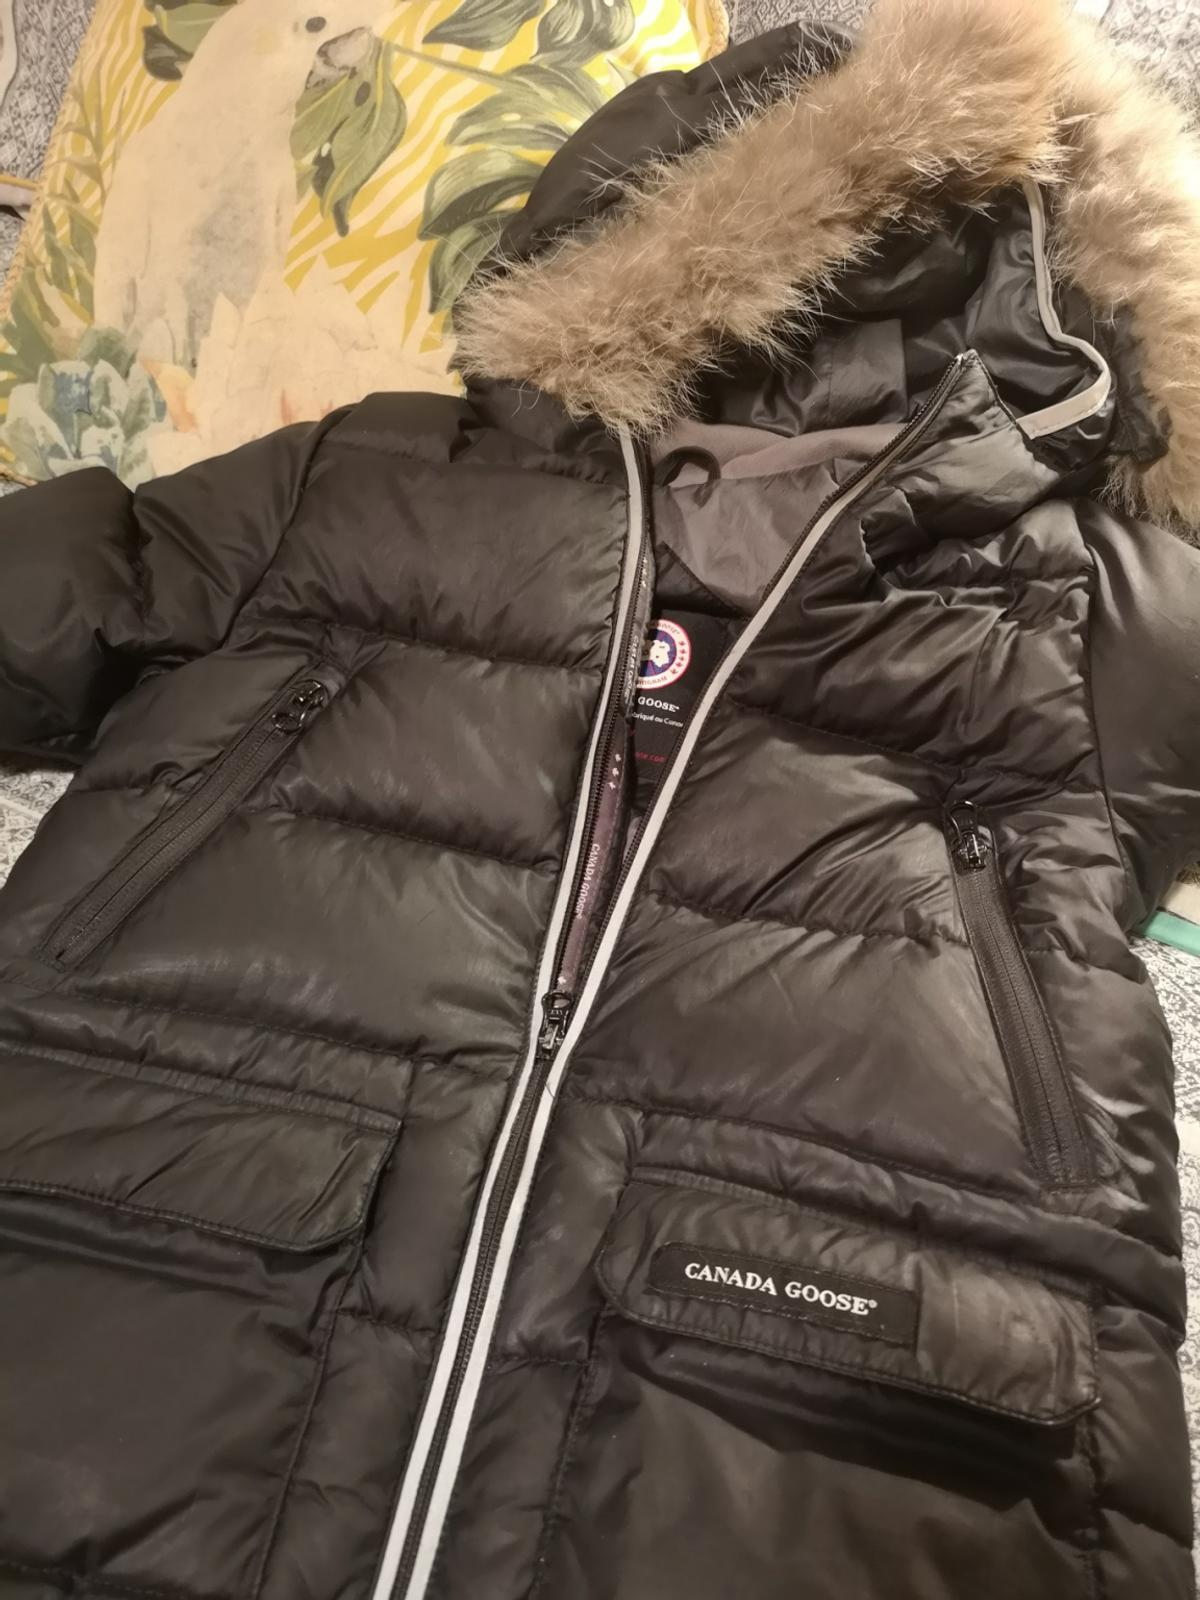 Size small, age 7 to 8. In excellent condition except for some of the reflective surface has rubbed off the sleeves. I've used flash so it's really noticeable but hardly seen in natural light. These cost over £500 new. Grab a bargain at £50